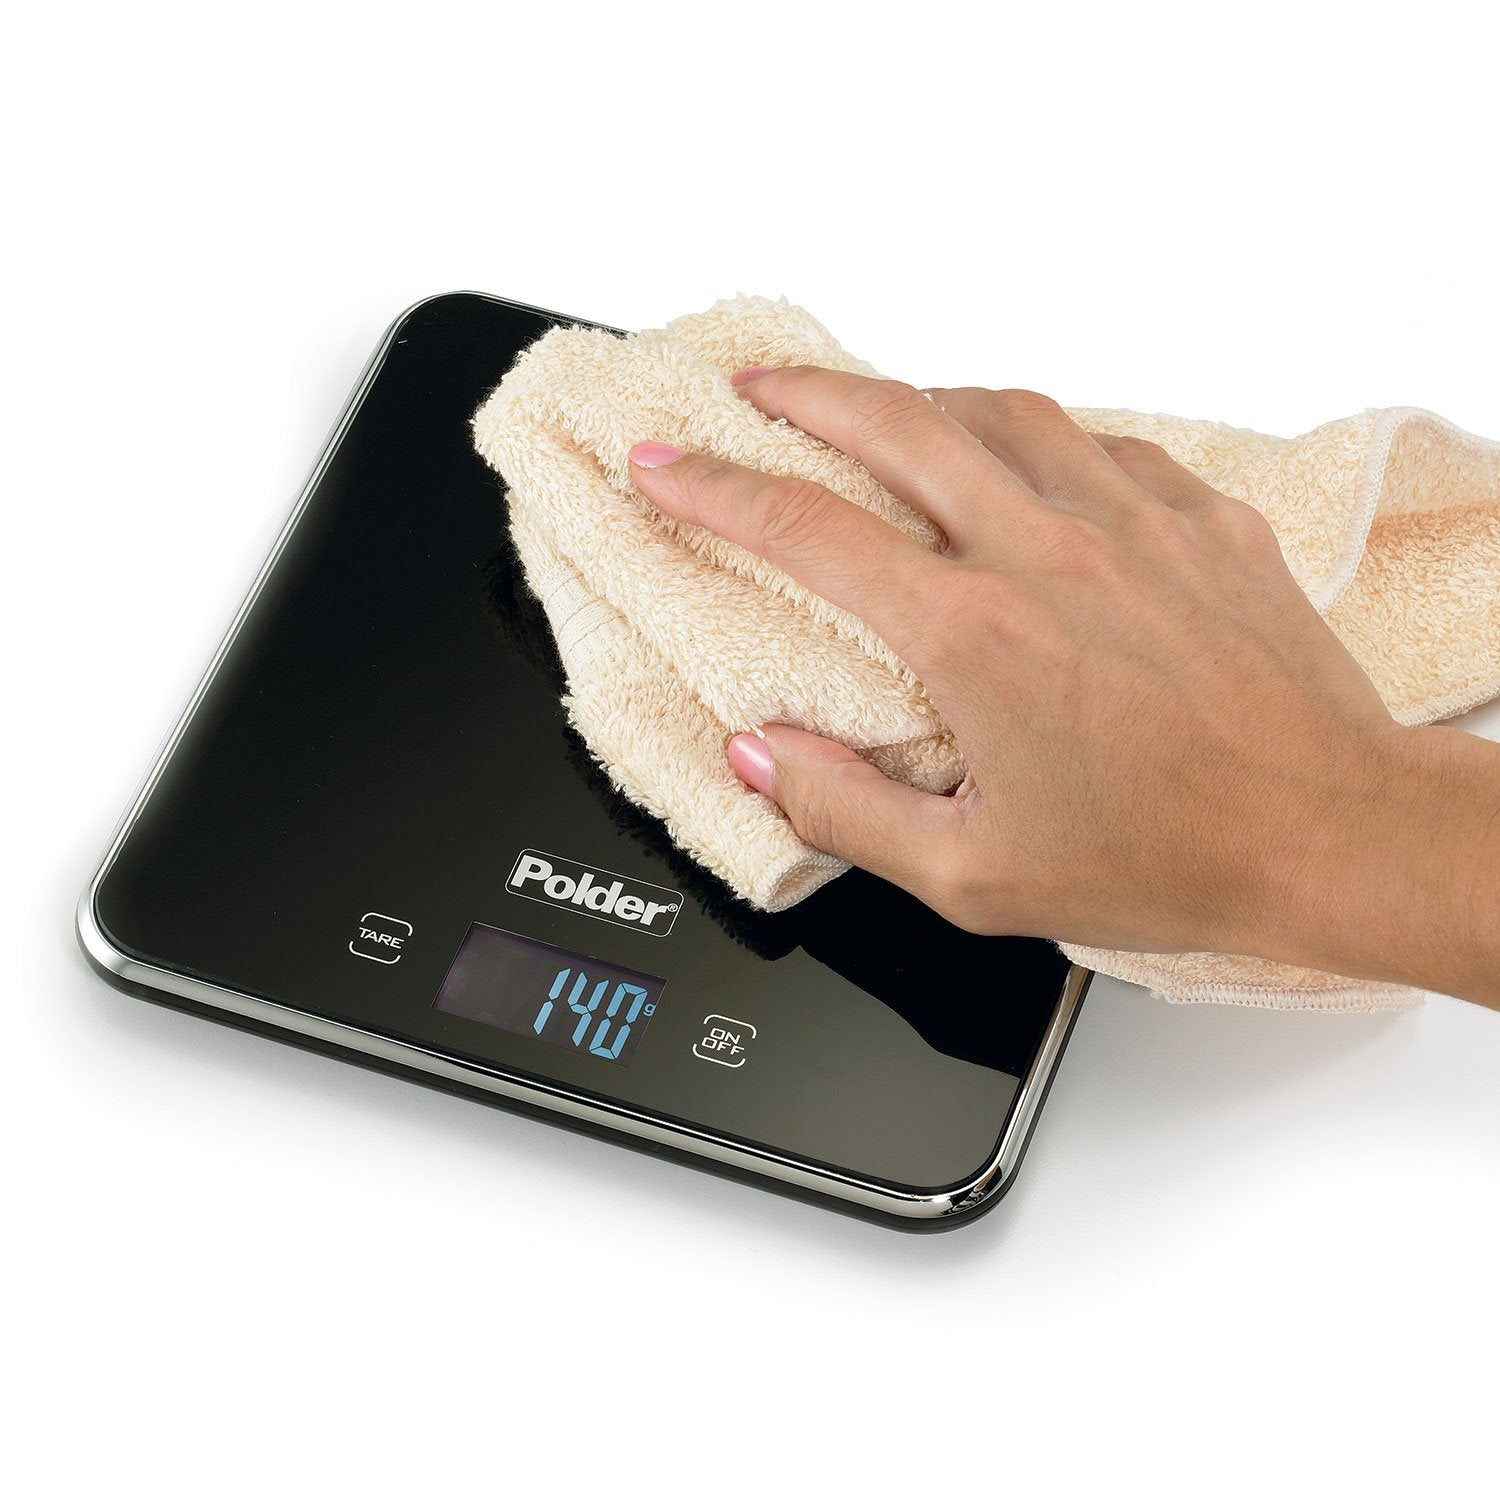 Slimmer Digital Kitchen Scale